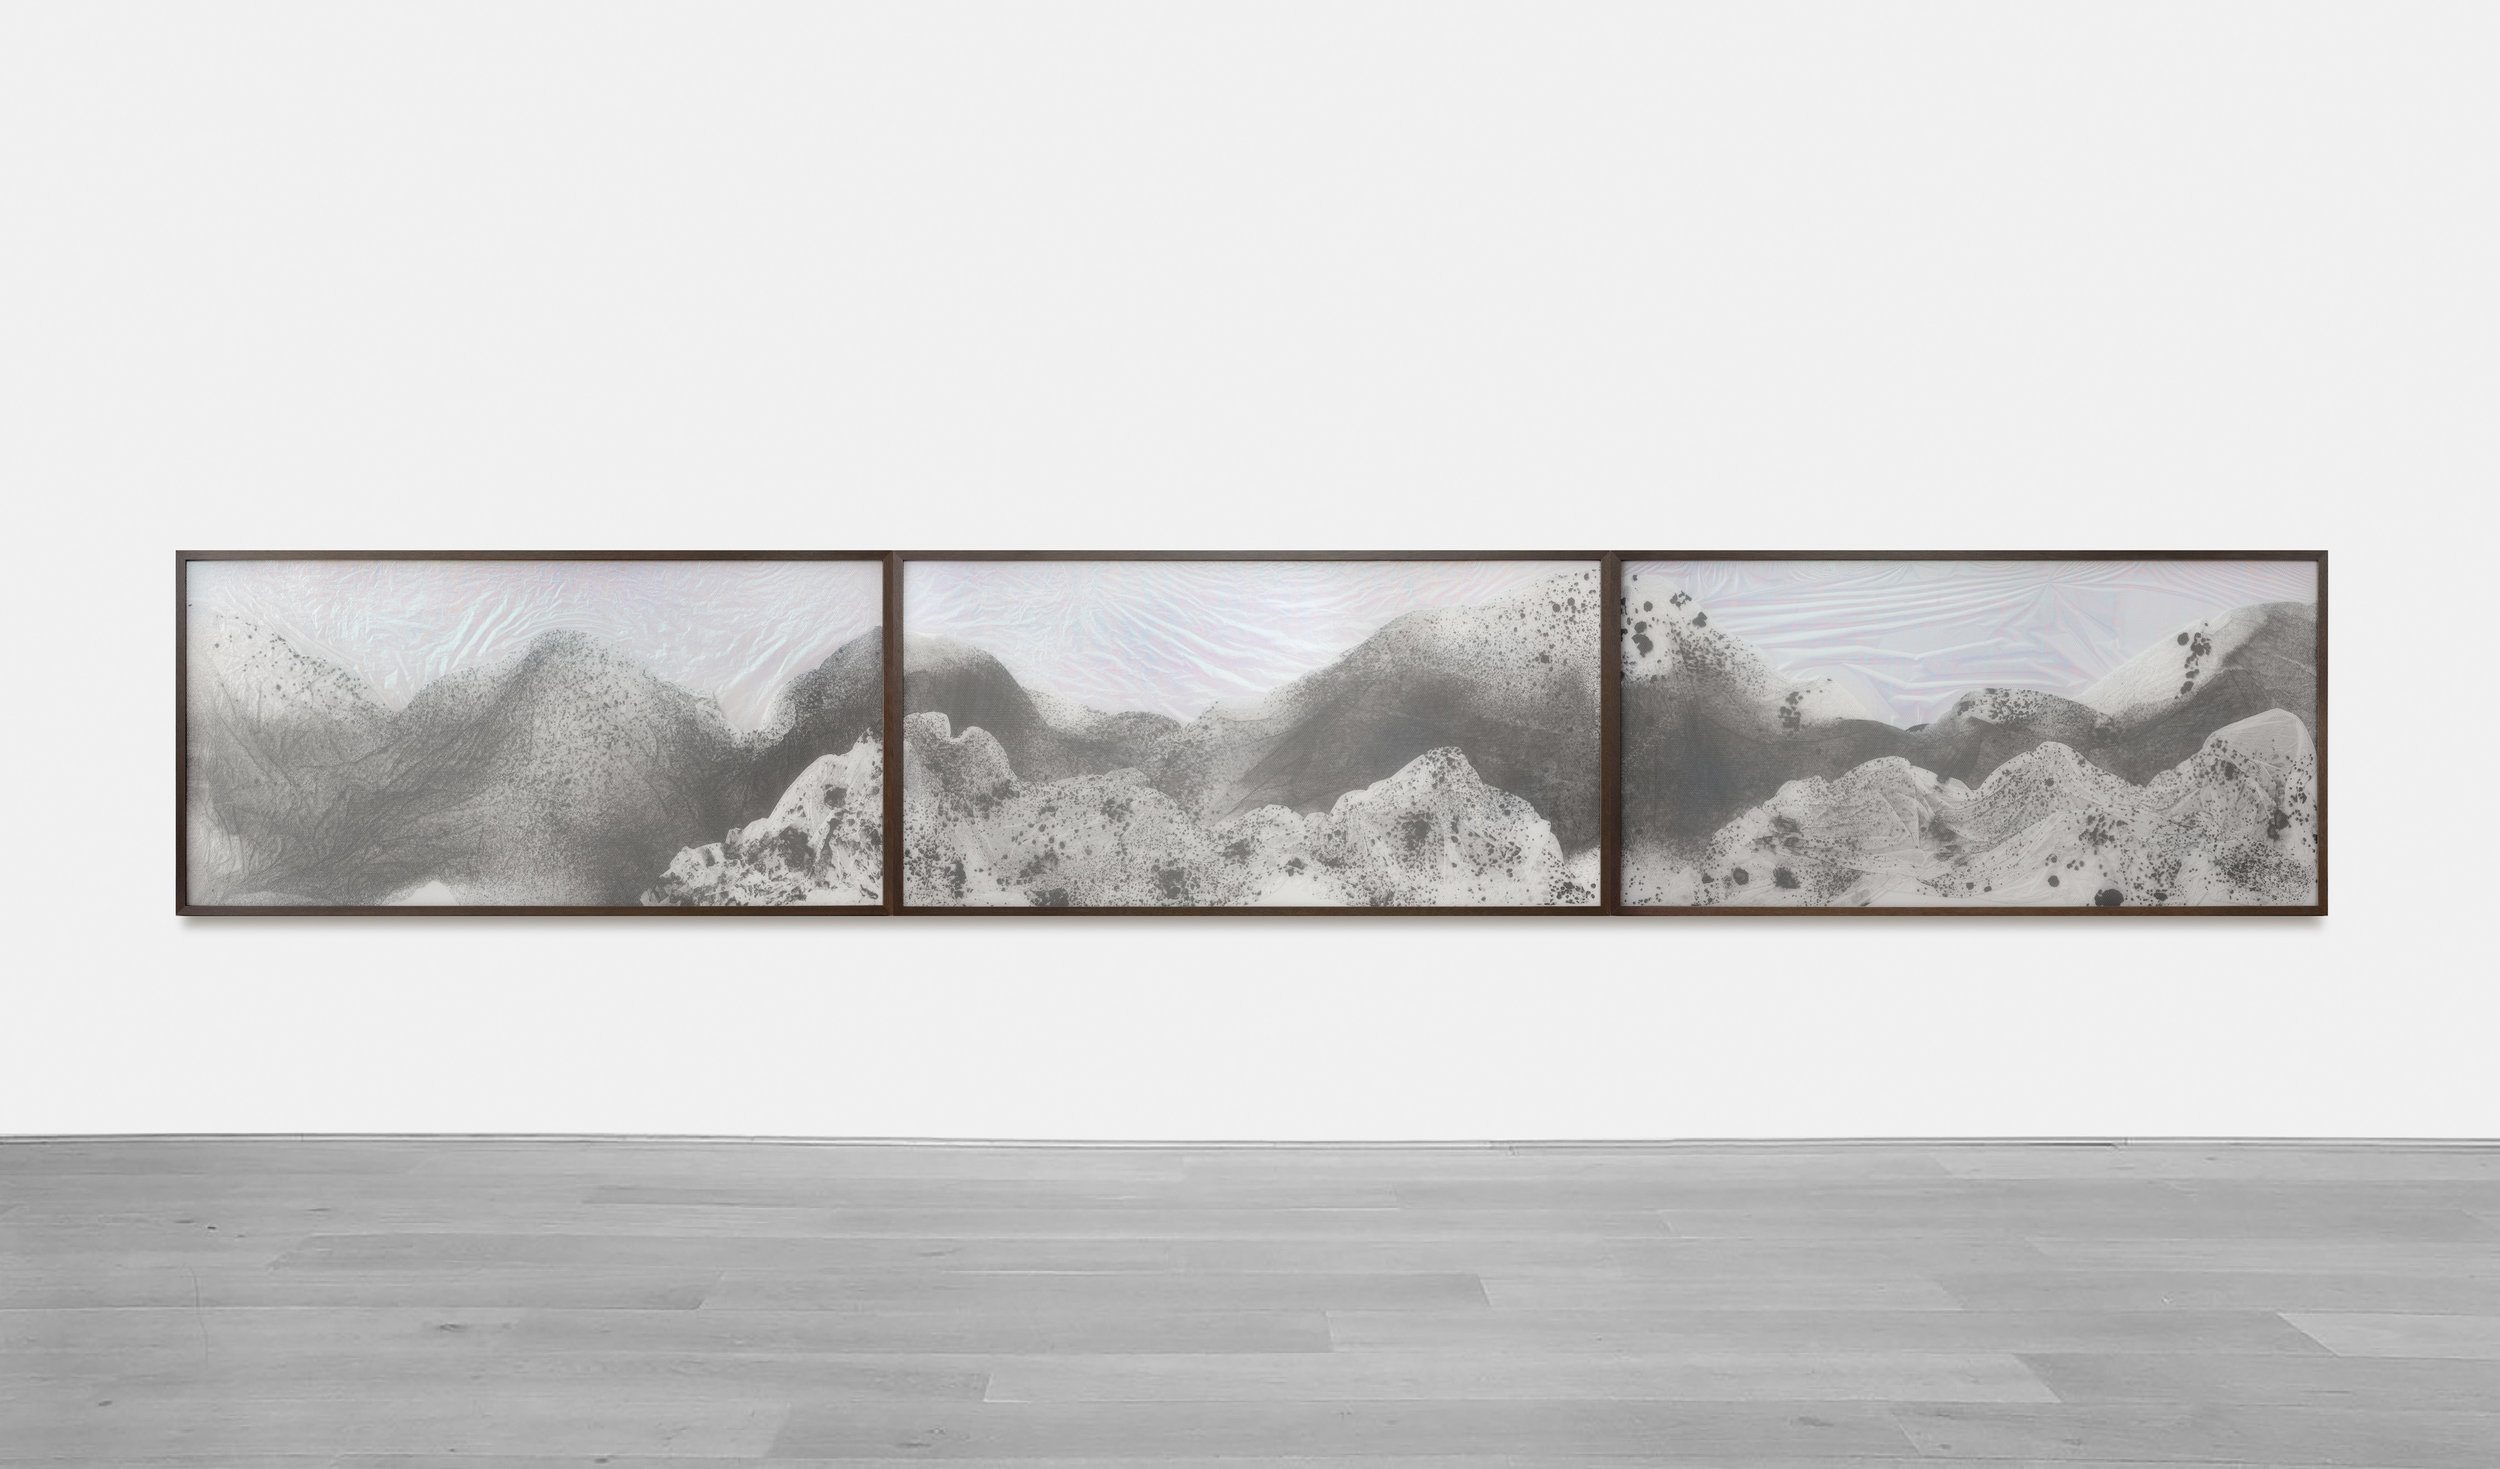 Substitute for Sorrow / Part V (Triptych) , 2018 - Installation view  Calligraphy ink on Xuan paper, dichroic film beneath marbled Plexiglas 540 x 90 cm (213 x 35 in)